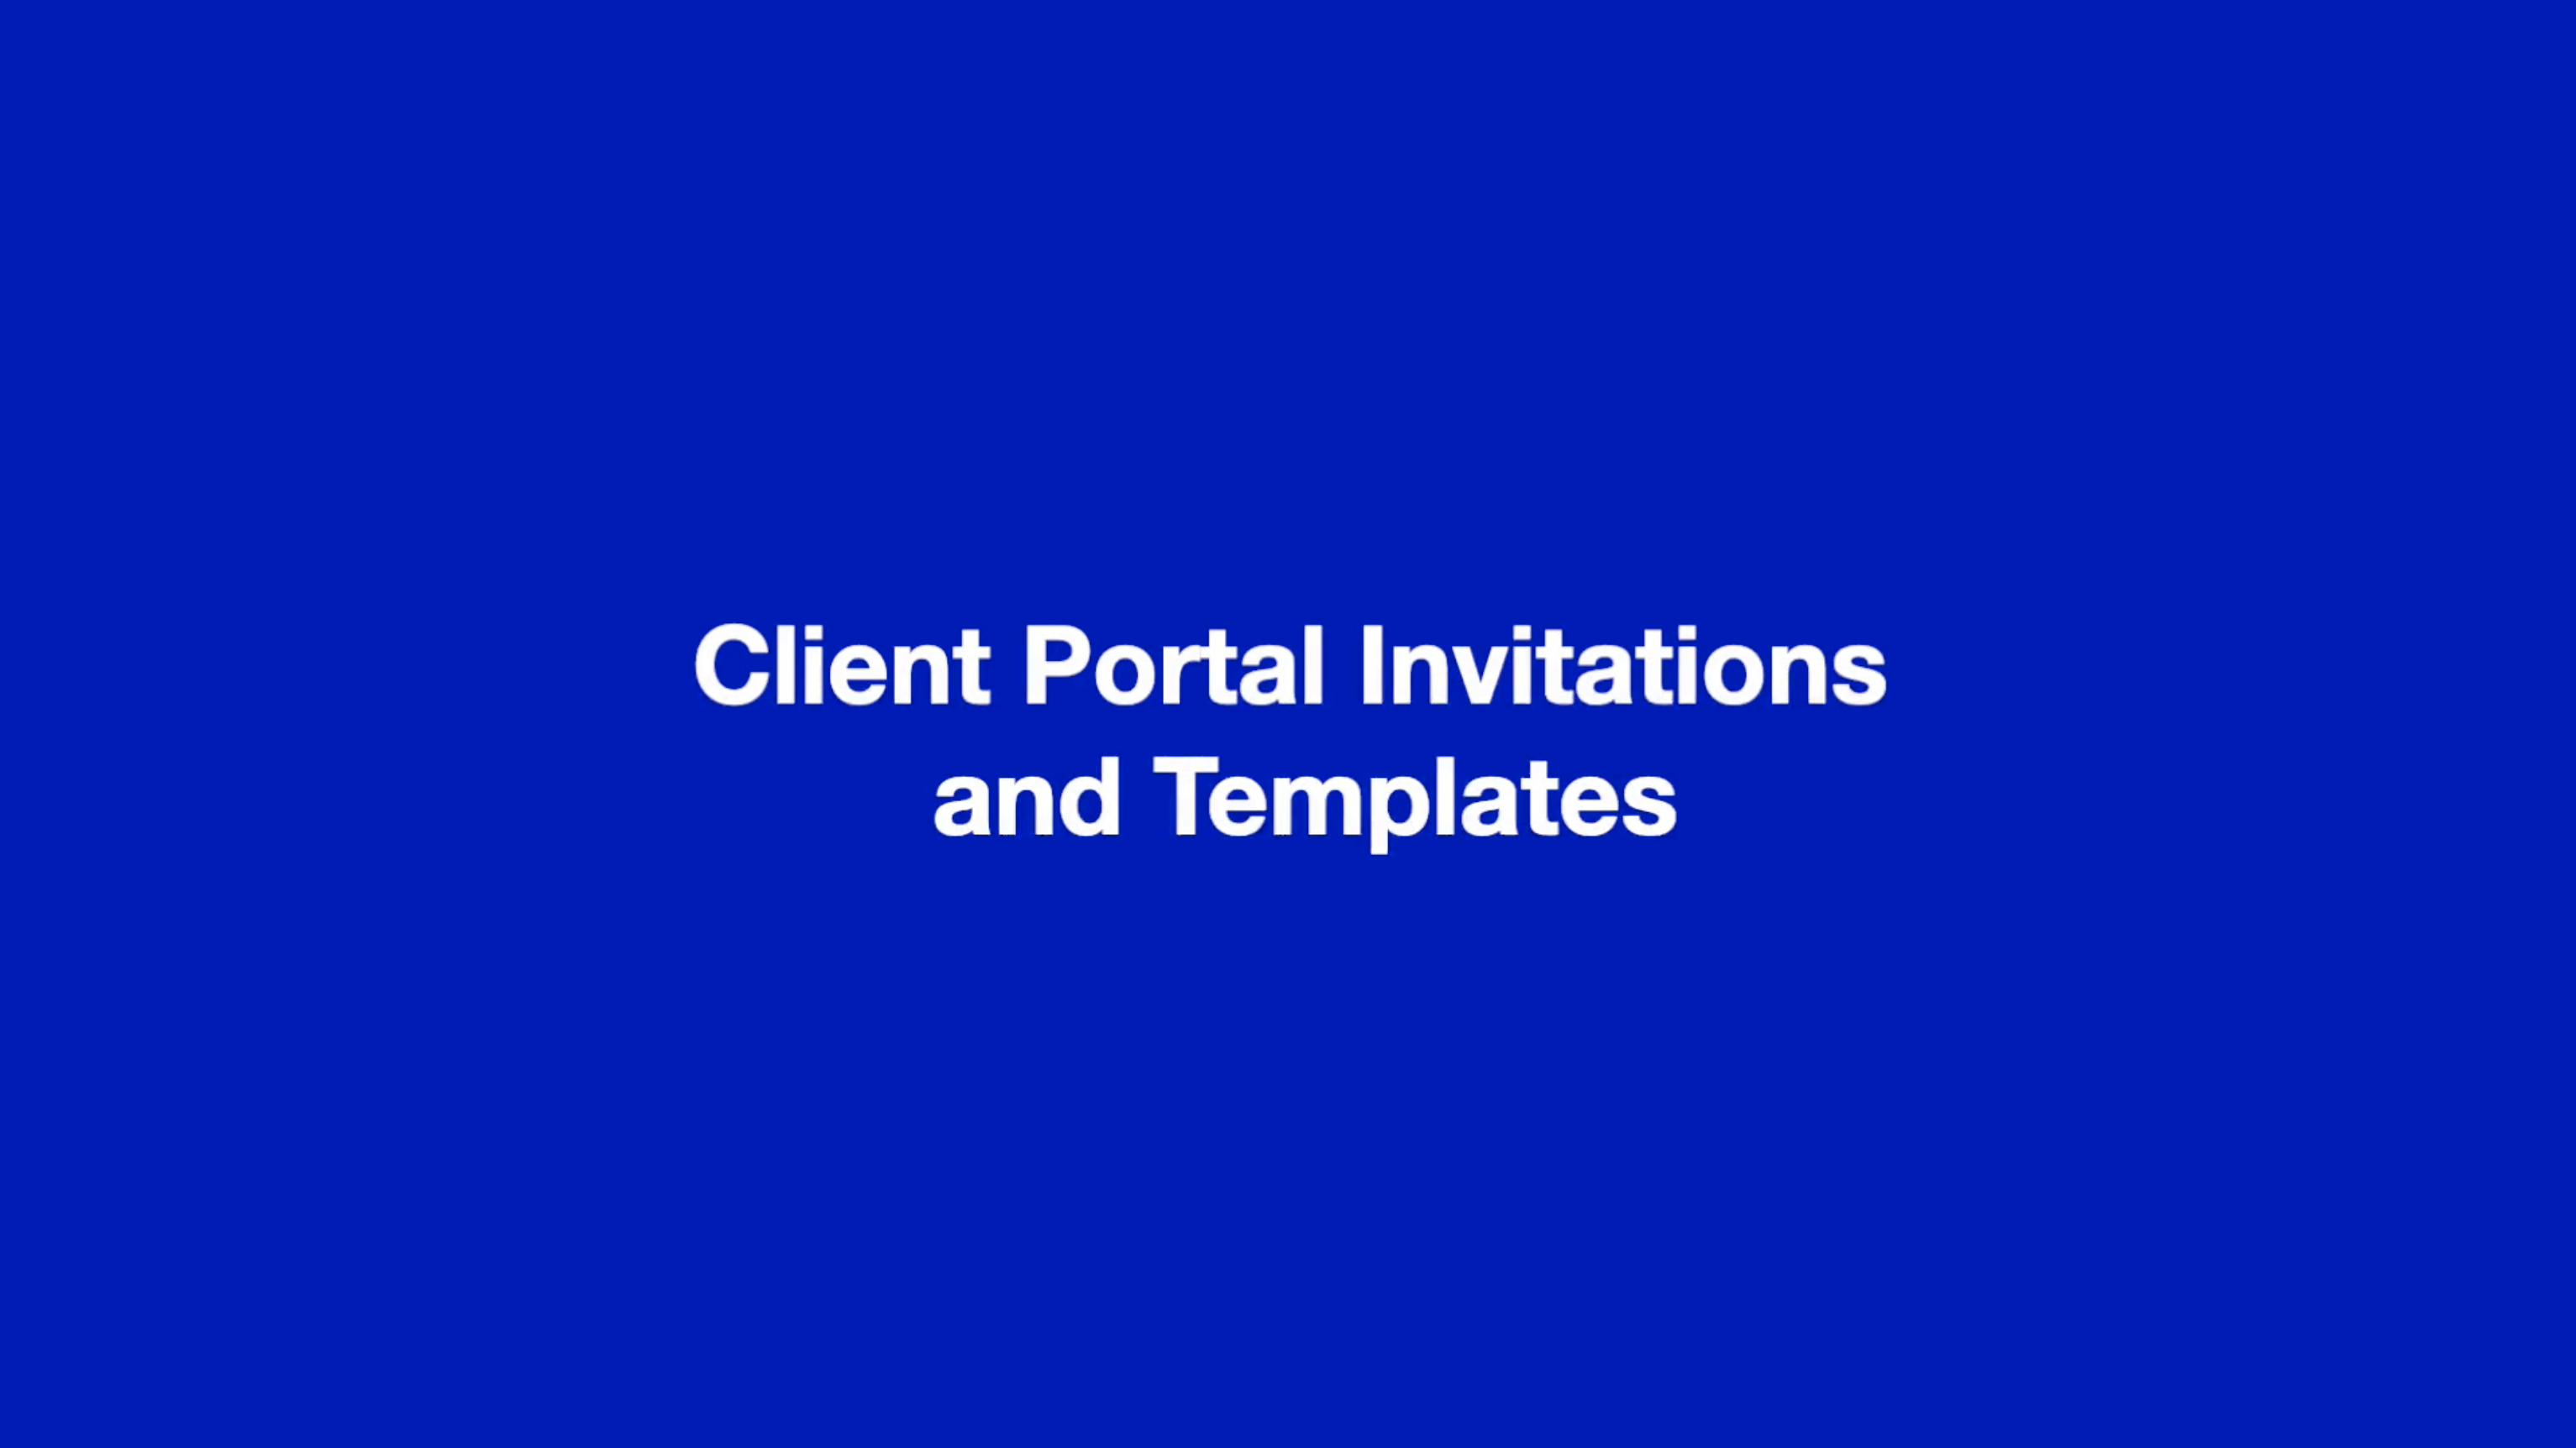 Client Portal Invitations and Templates thumbnail